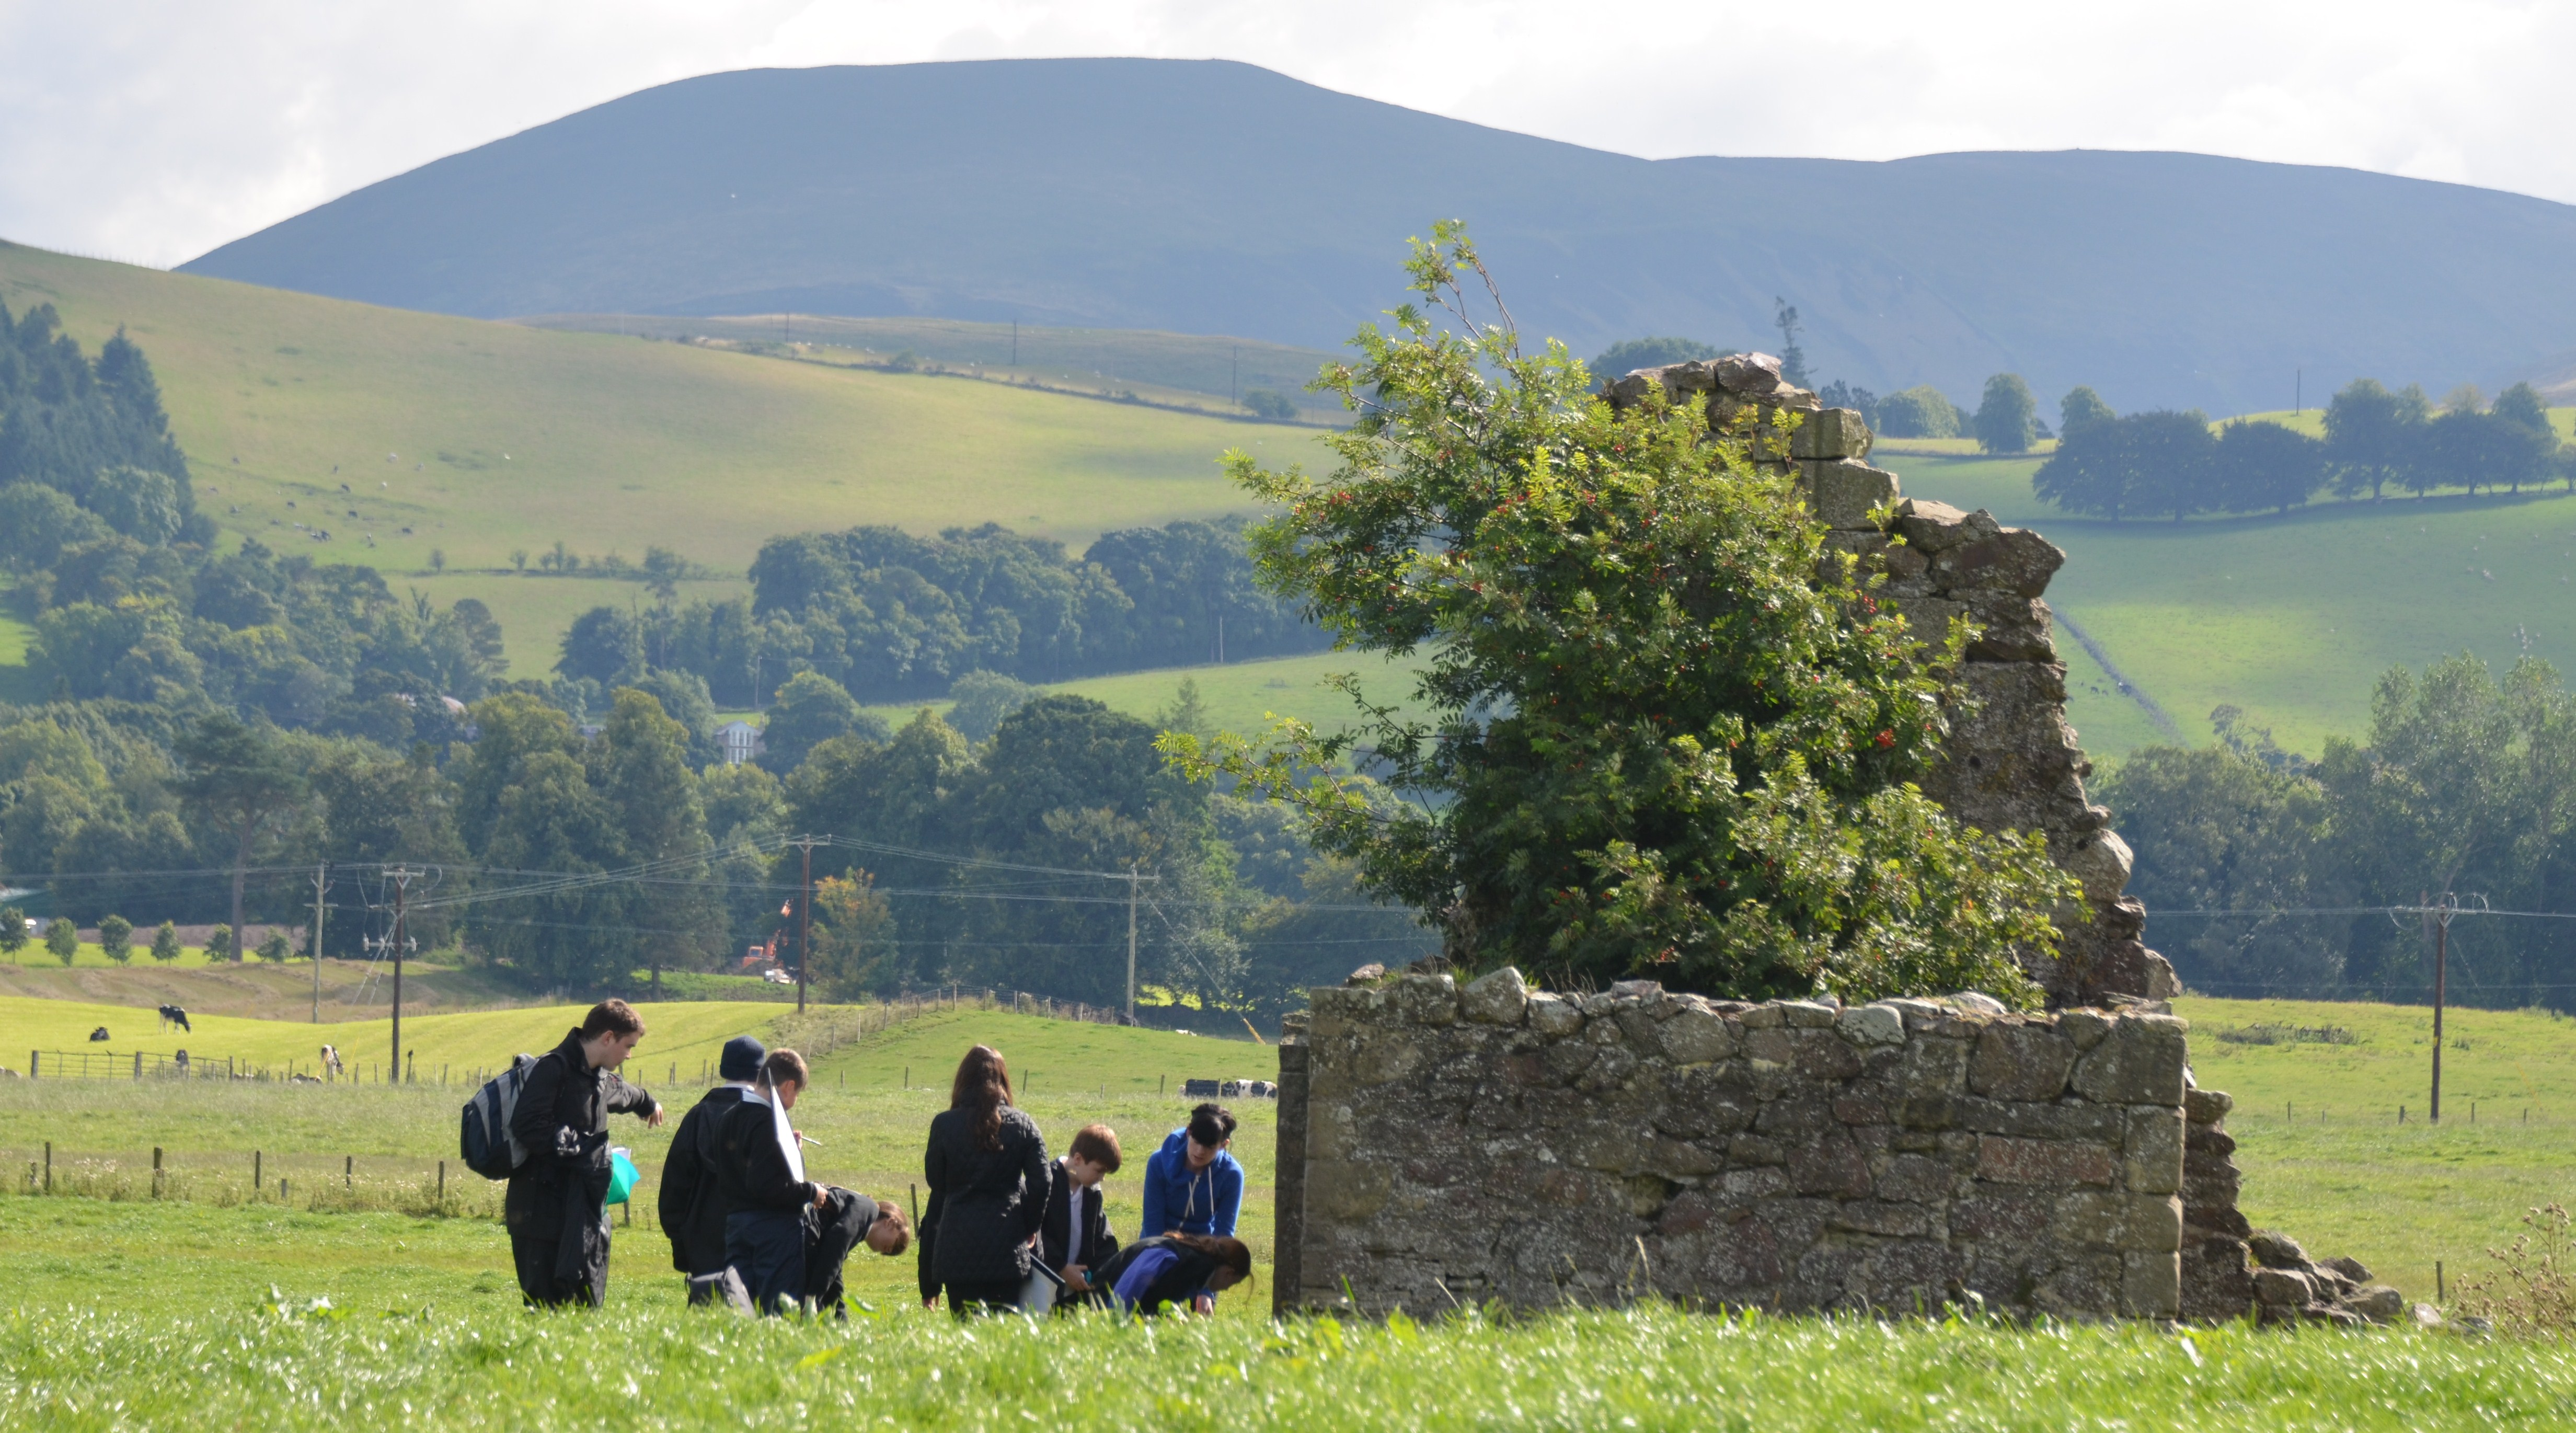 Giving pupils the opportunity to explore their local historic environment